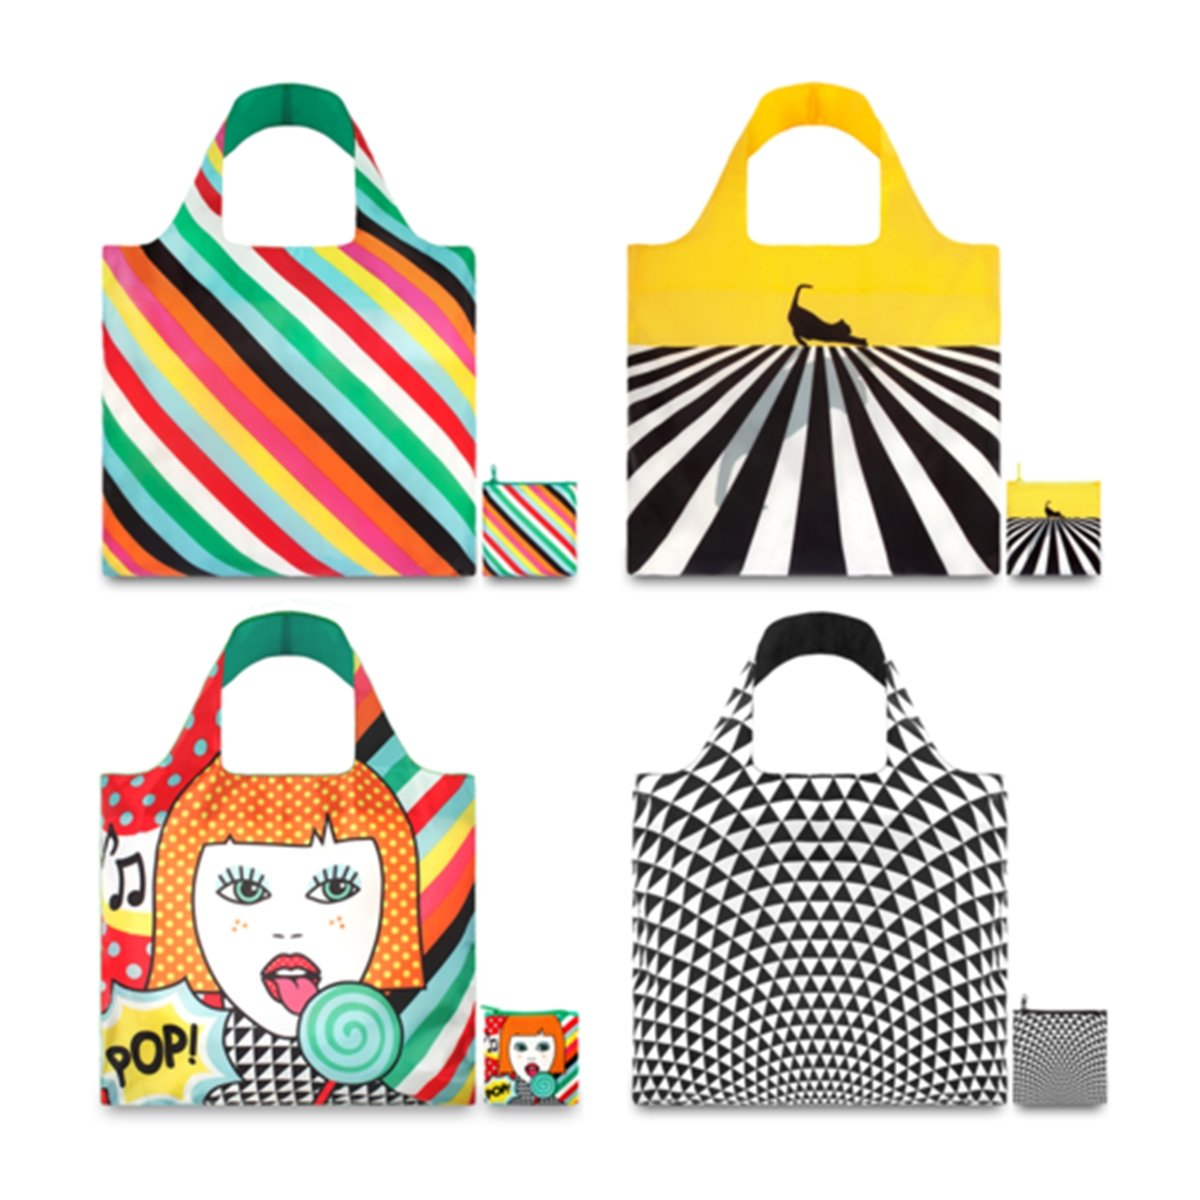 LOQI Pop Collection Pouch Reusable Bags, Multicolored, Set of 4 by LOQI B00FPXOCWO